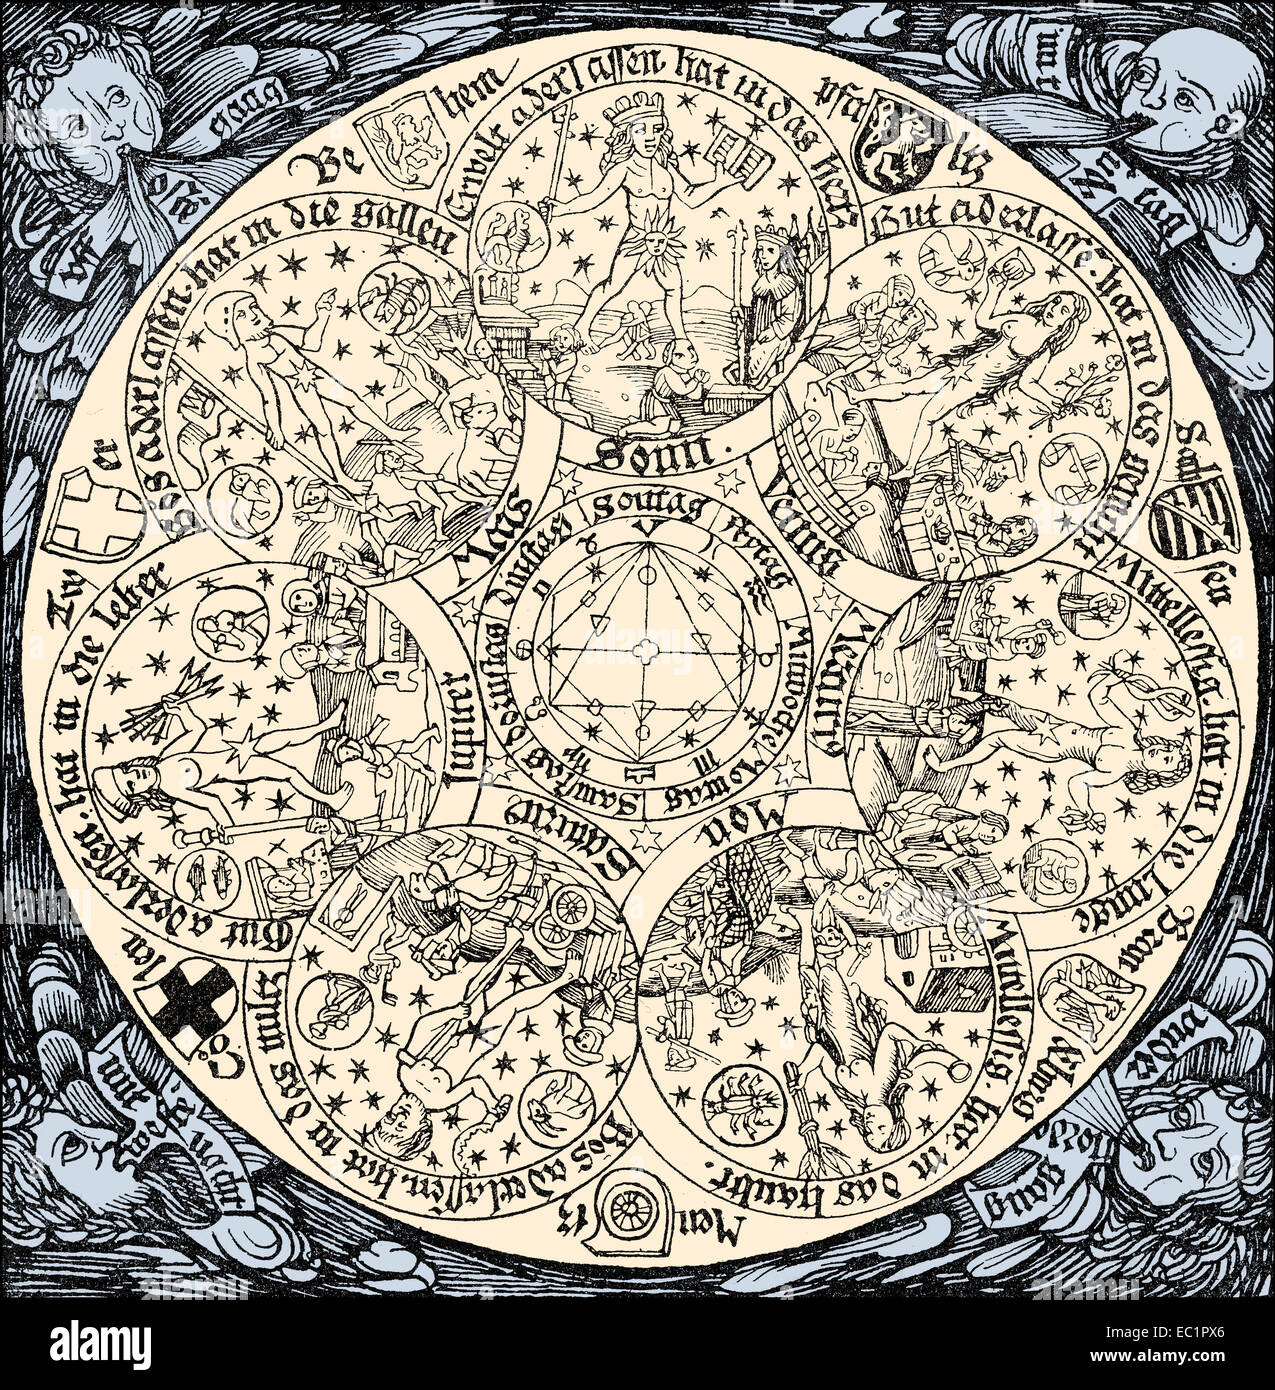 The Seven Planets, c. 1480, Astrological diagram showing the seven planets and the rotating around the earth, - Stock Image